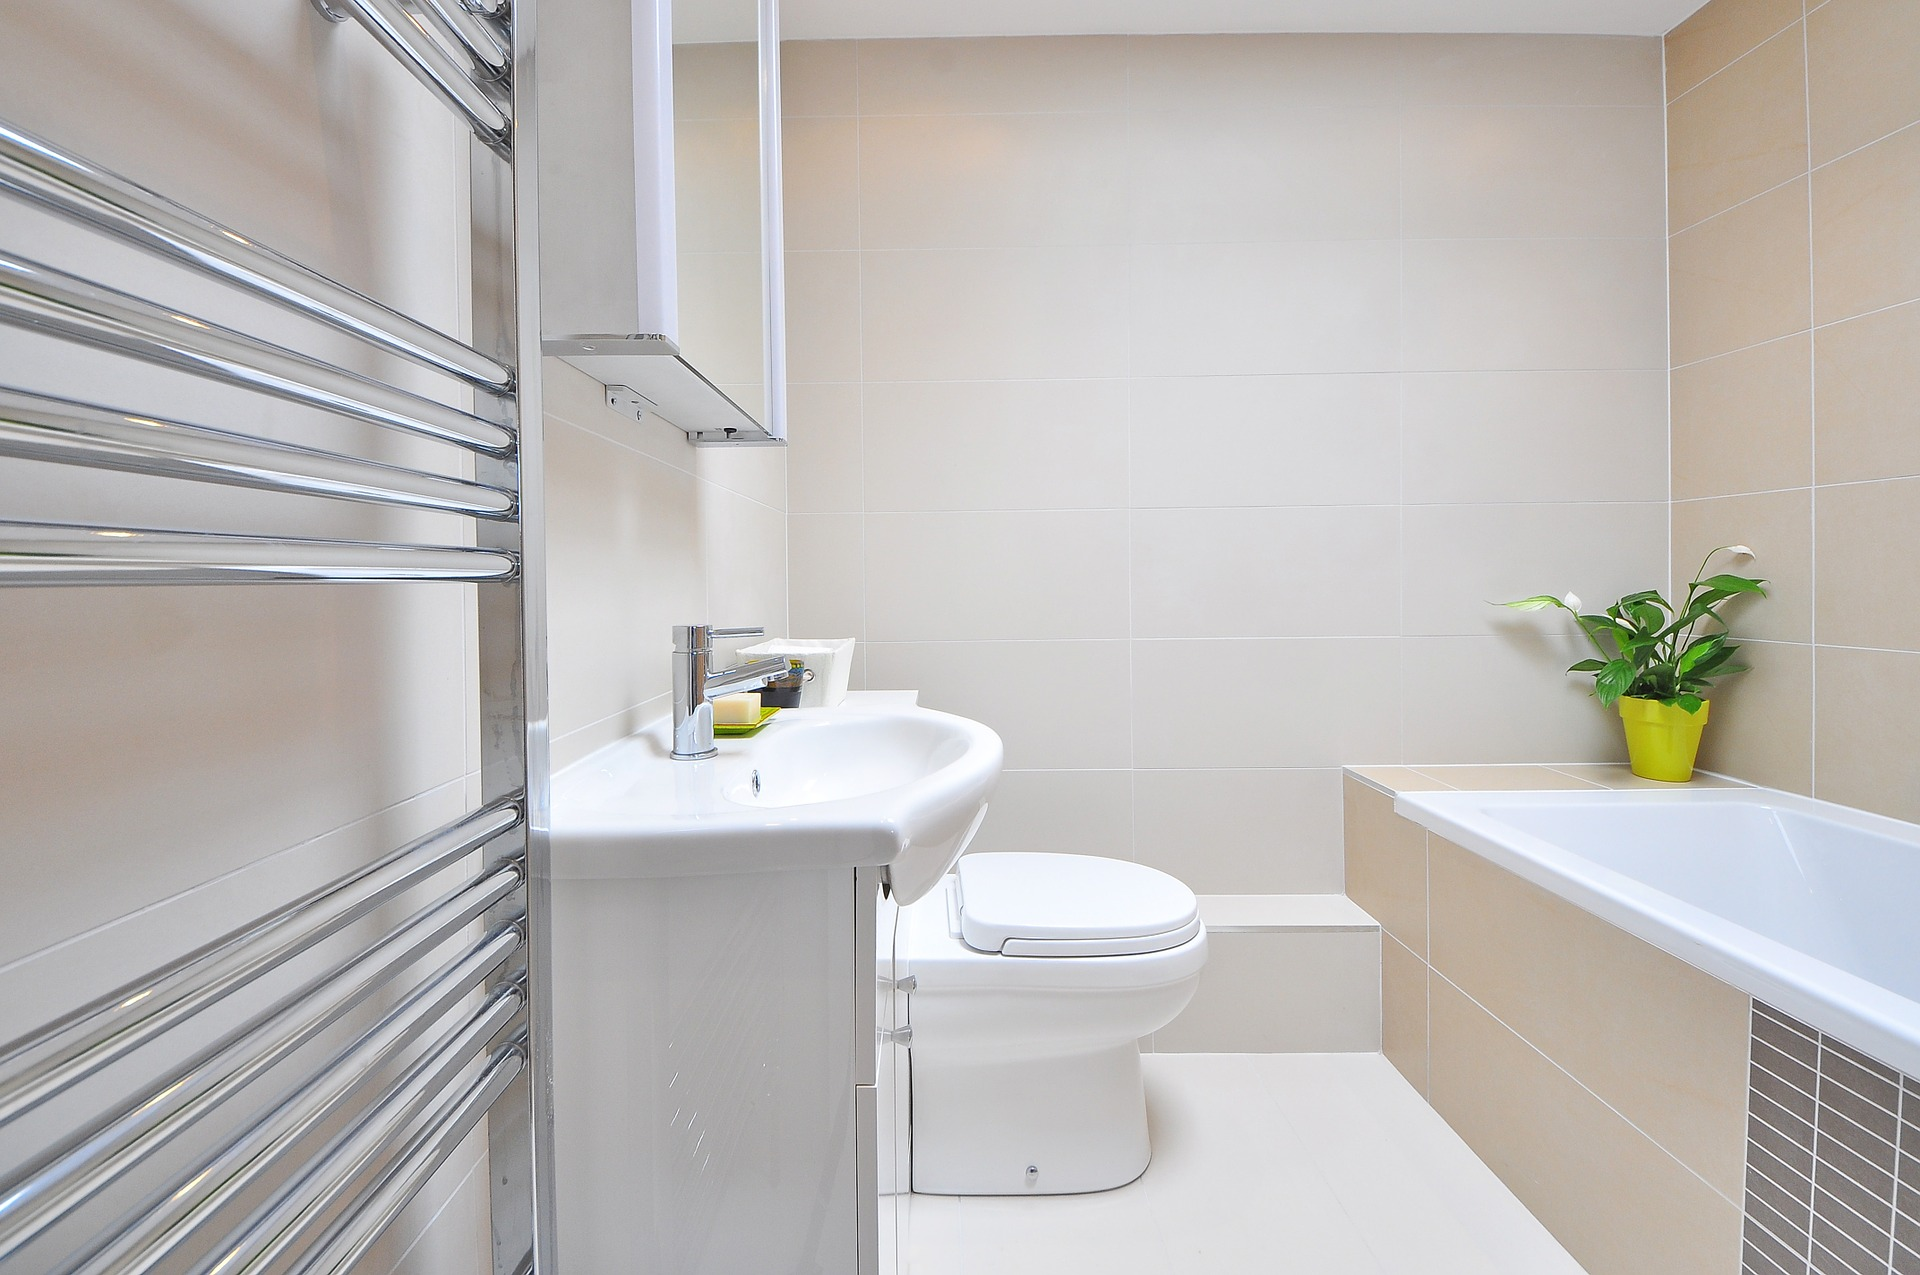 plumbers New Cross